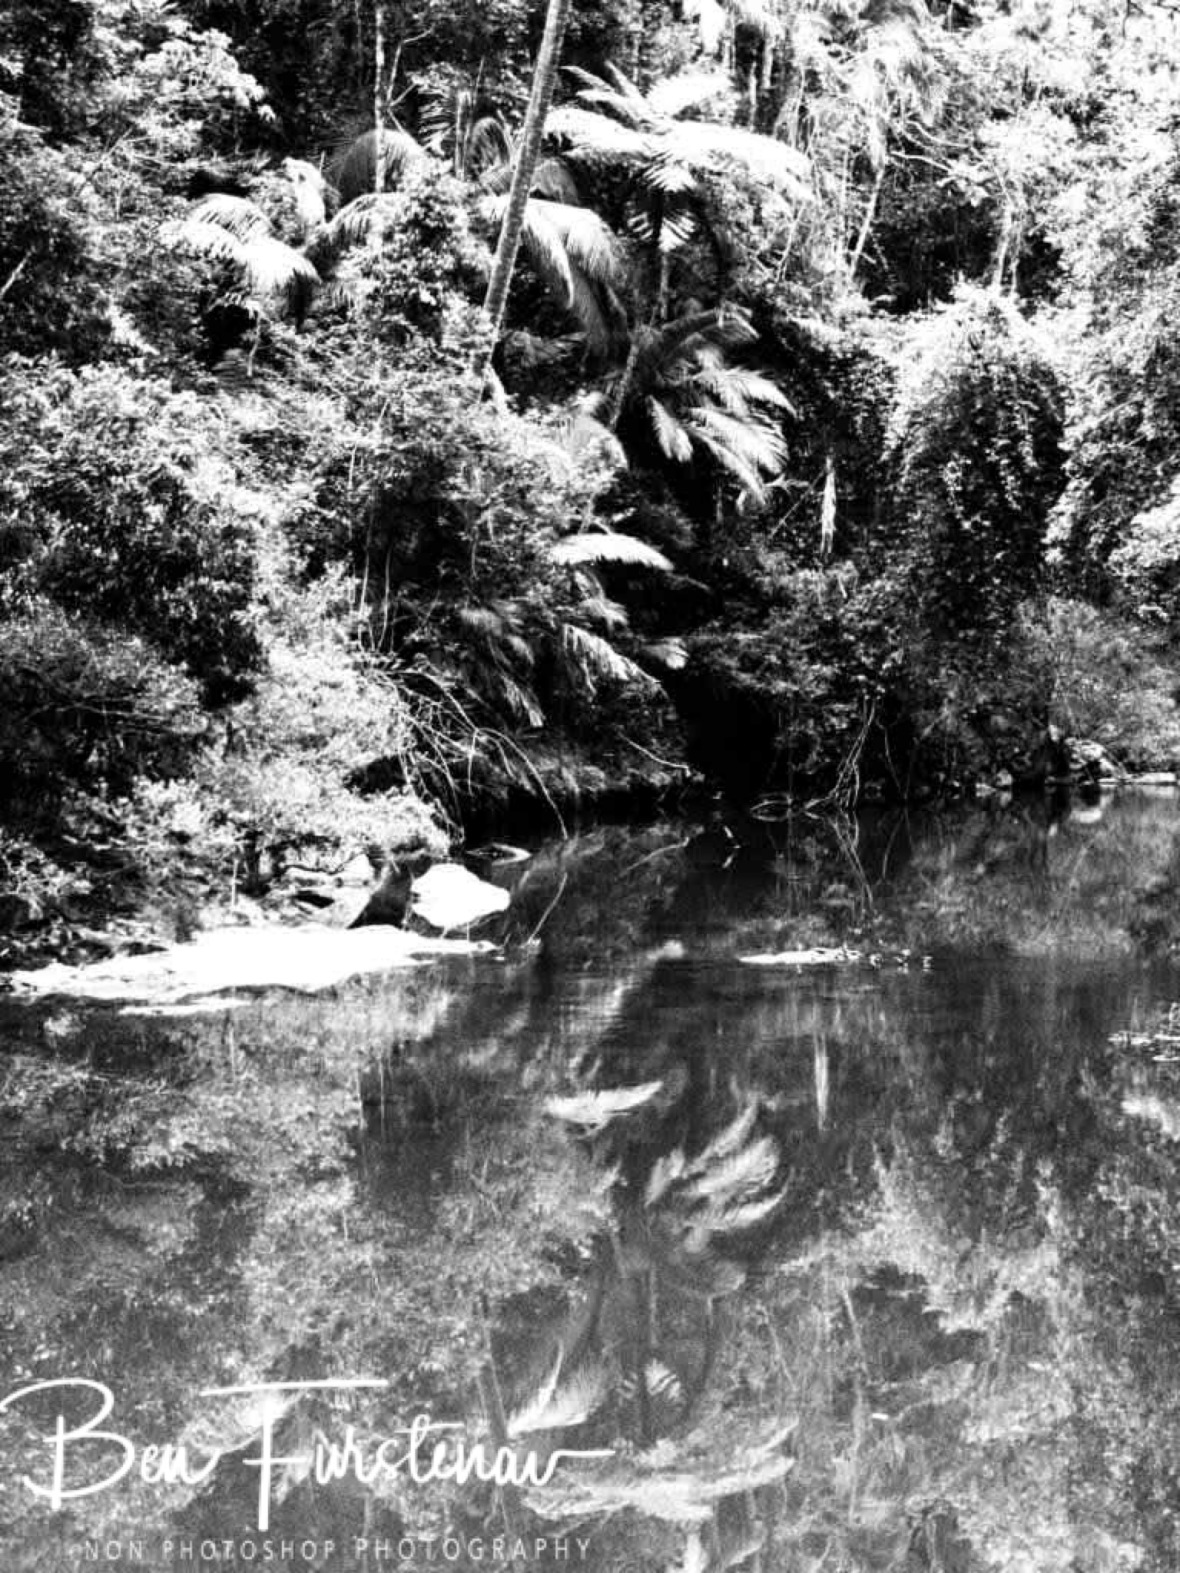 Monochrome reflections at Eungalla National Parks, Queensland, Australia